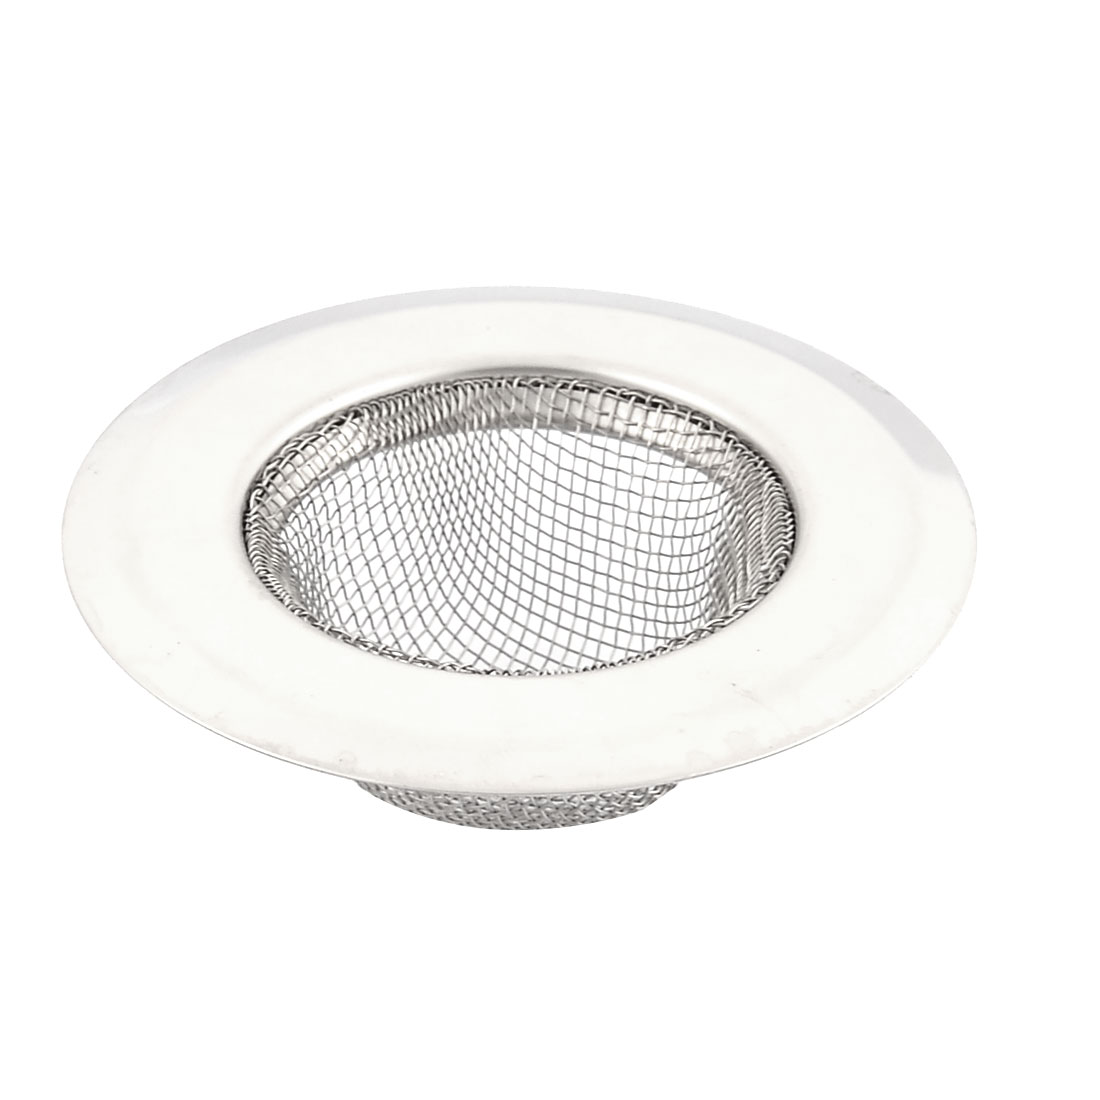 Home Kitchen Metal Sink Drain Strainer Screen Stopper